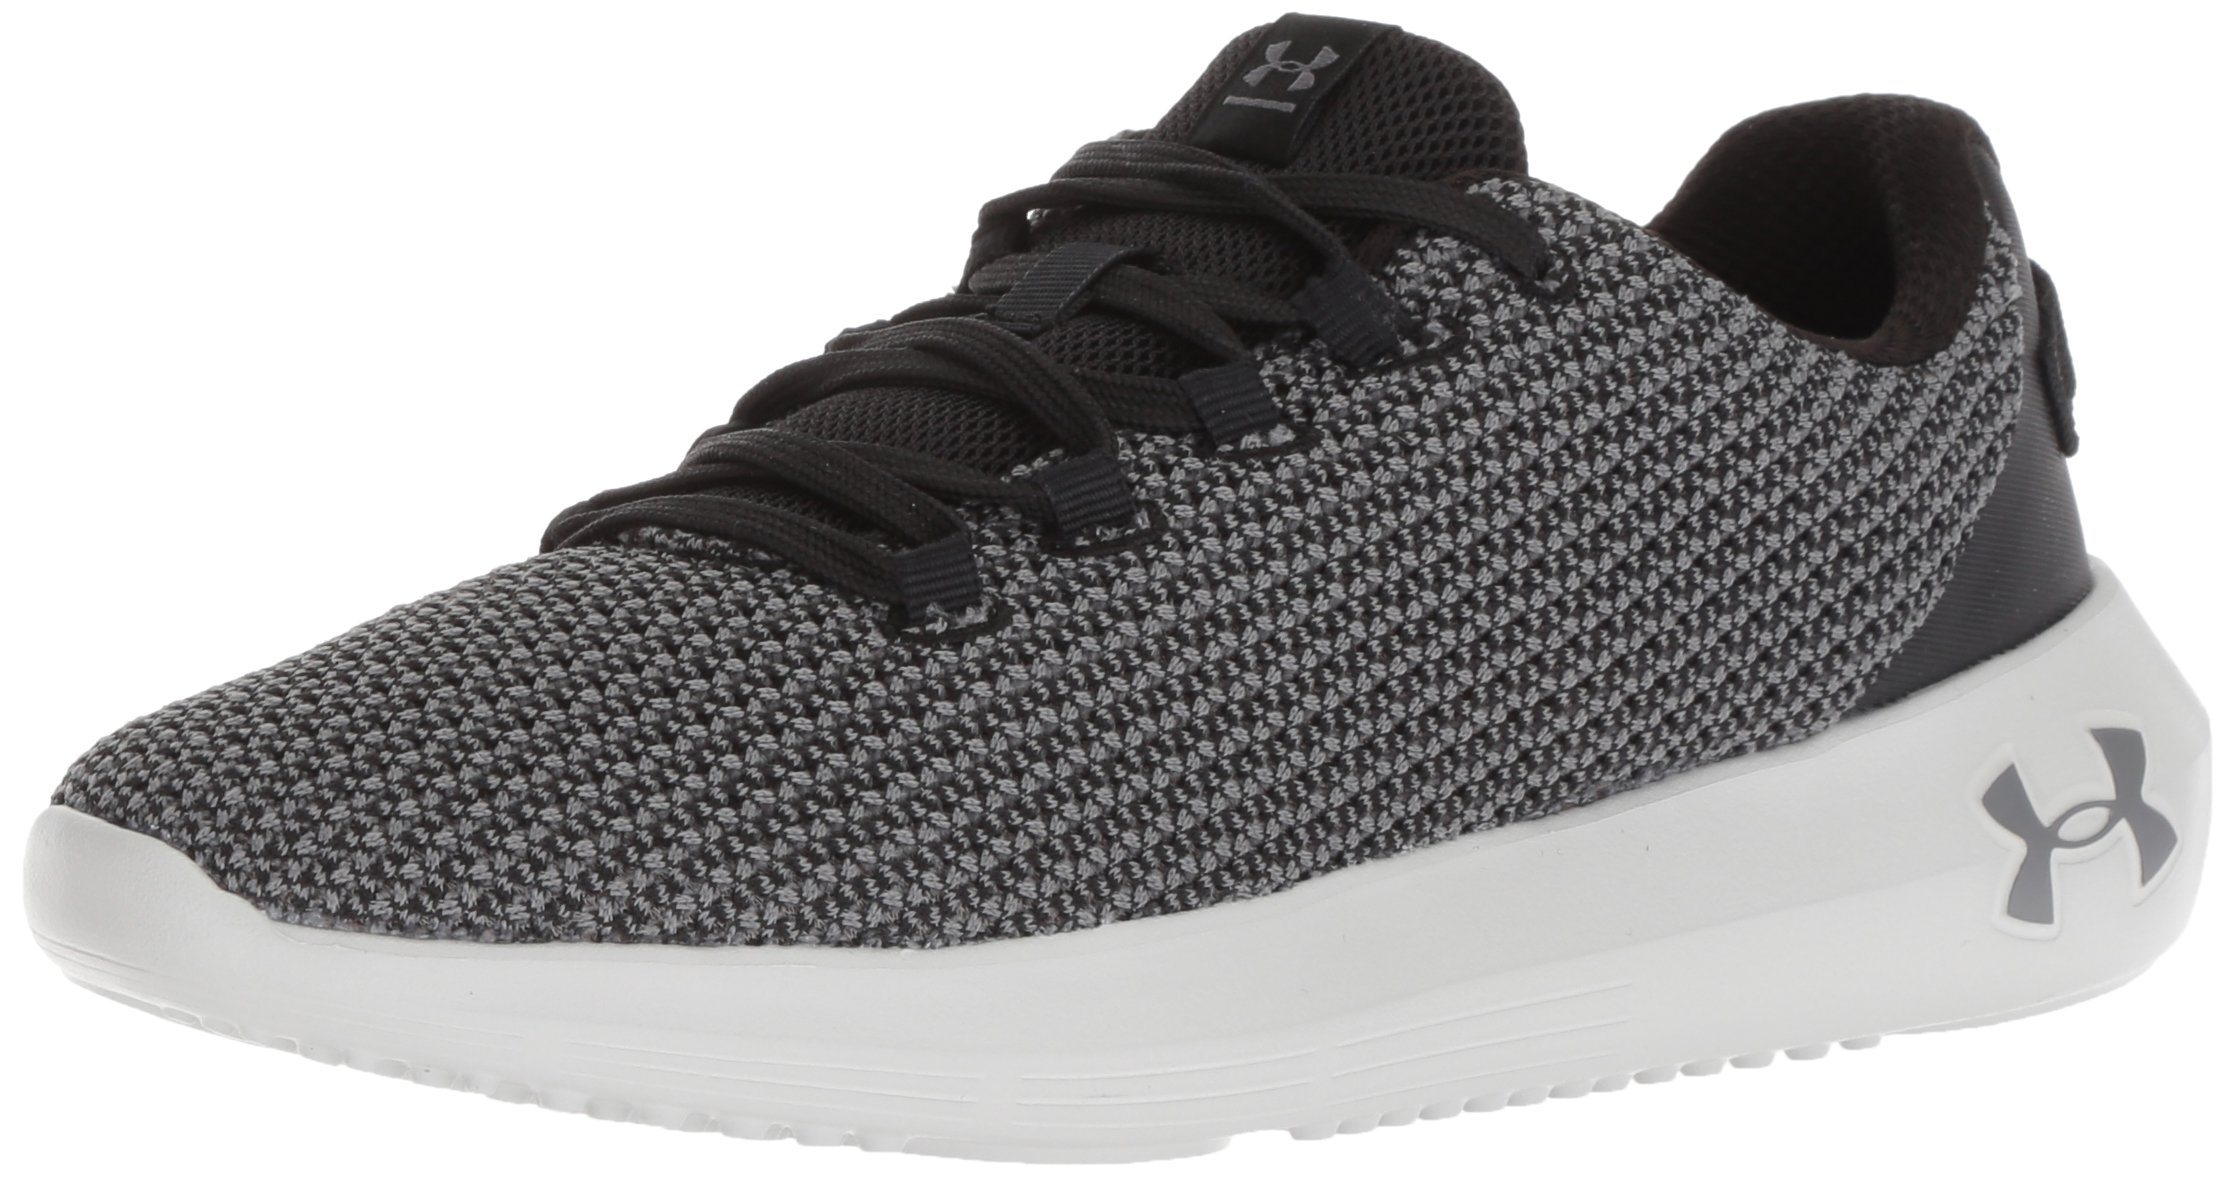 81lCcrd8gIL - Under Armour Women's's Ripple Competition Running Shoes